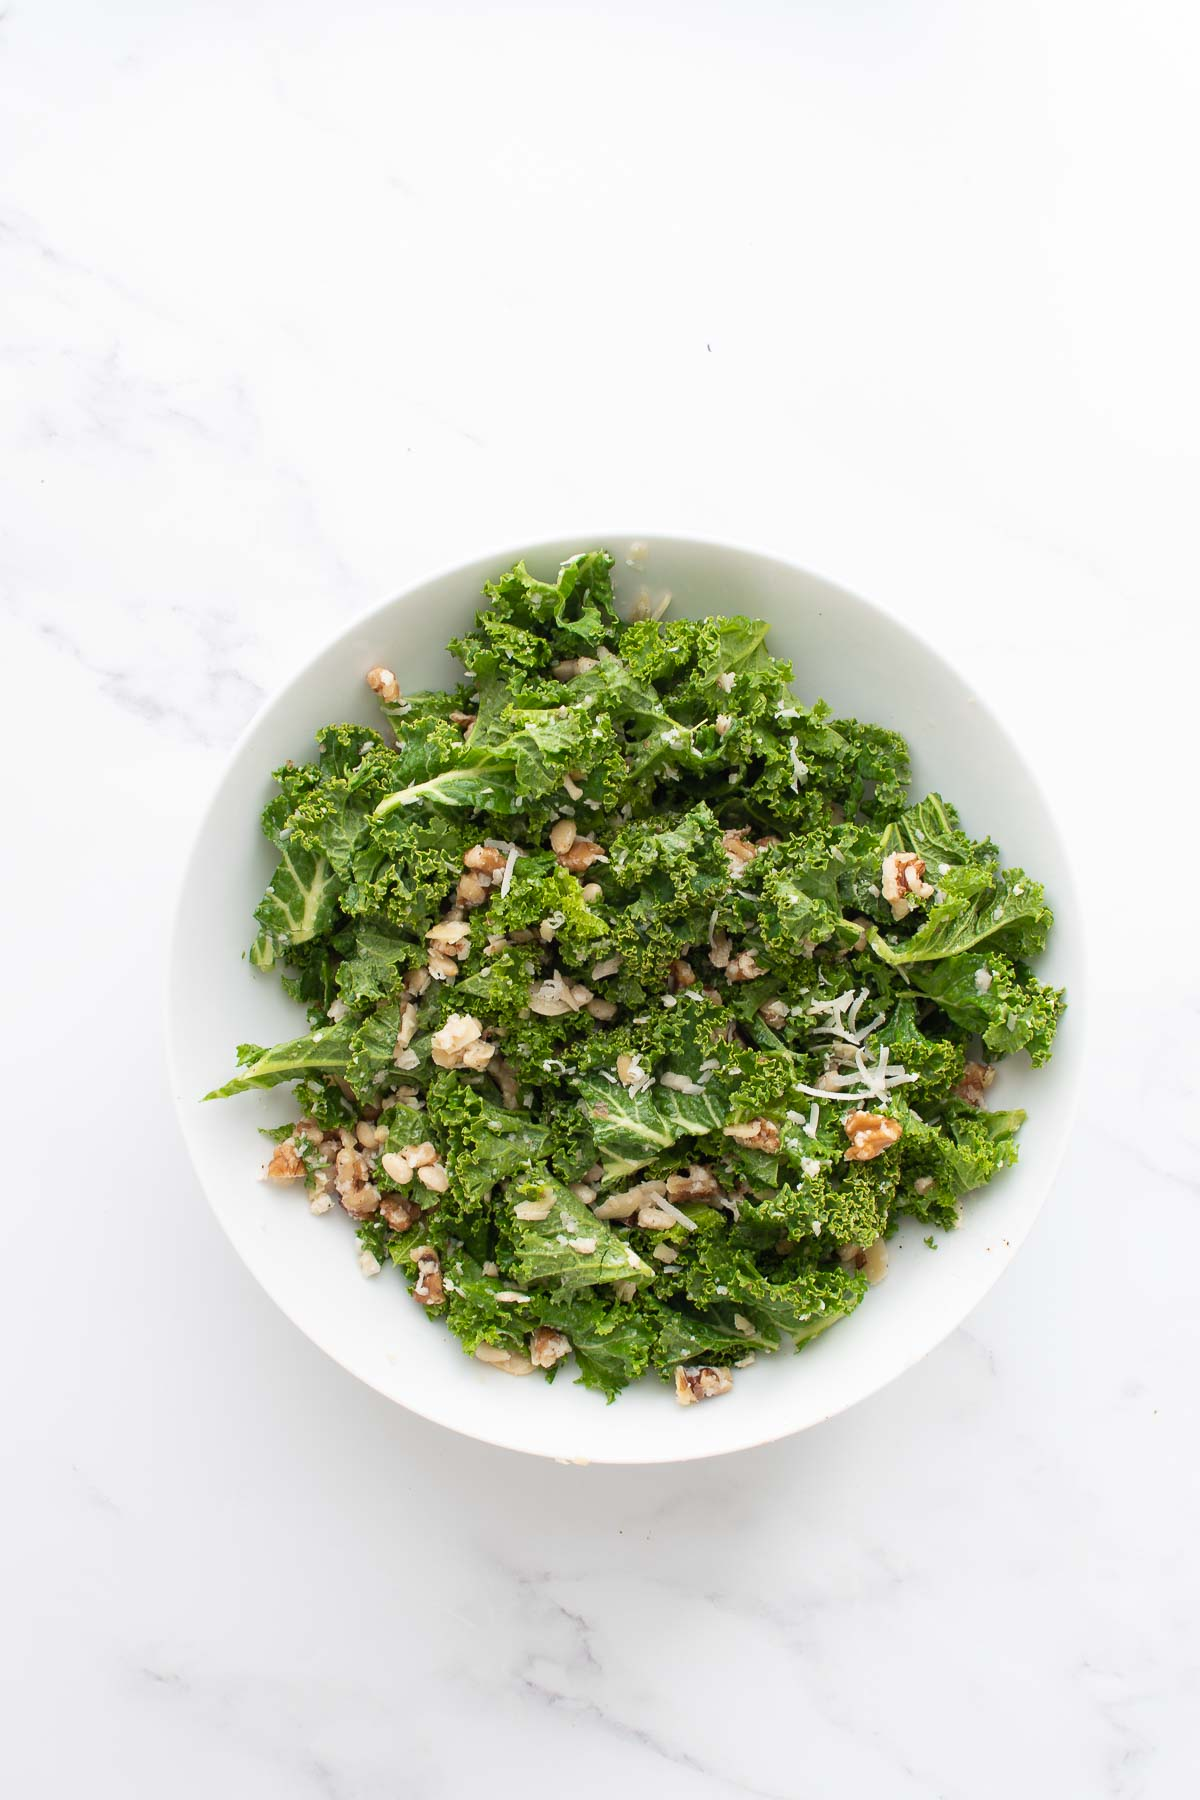 A bowl with lemon kale salad with nuts and parmesan.